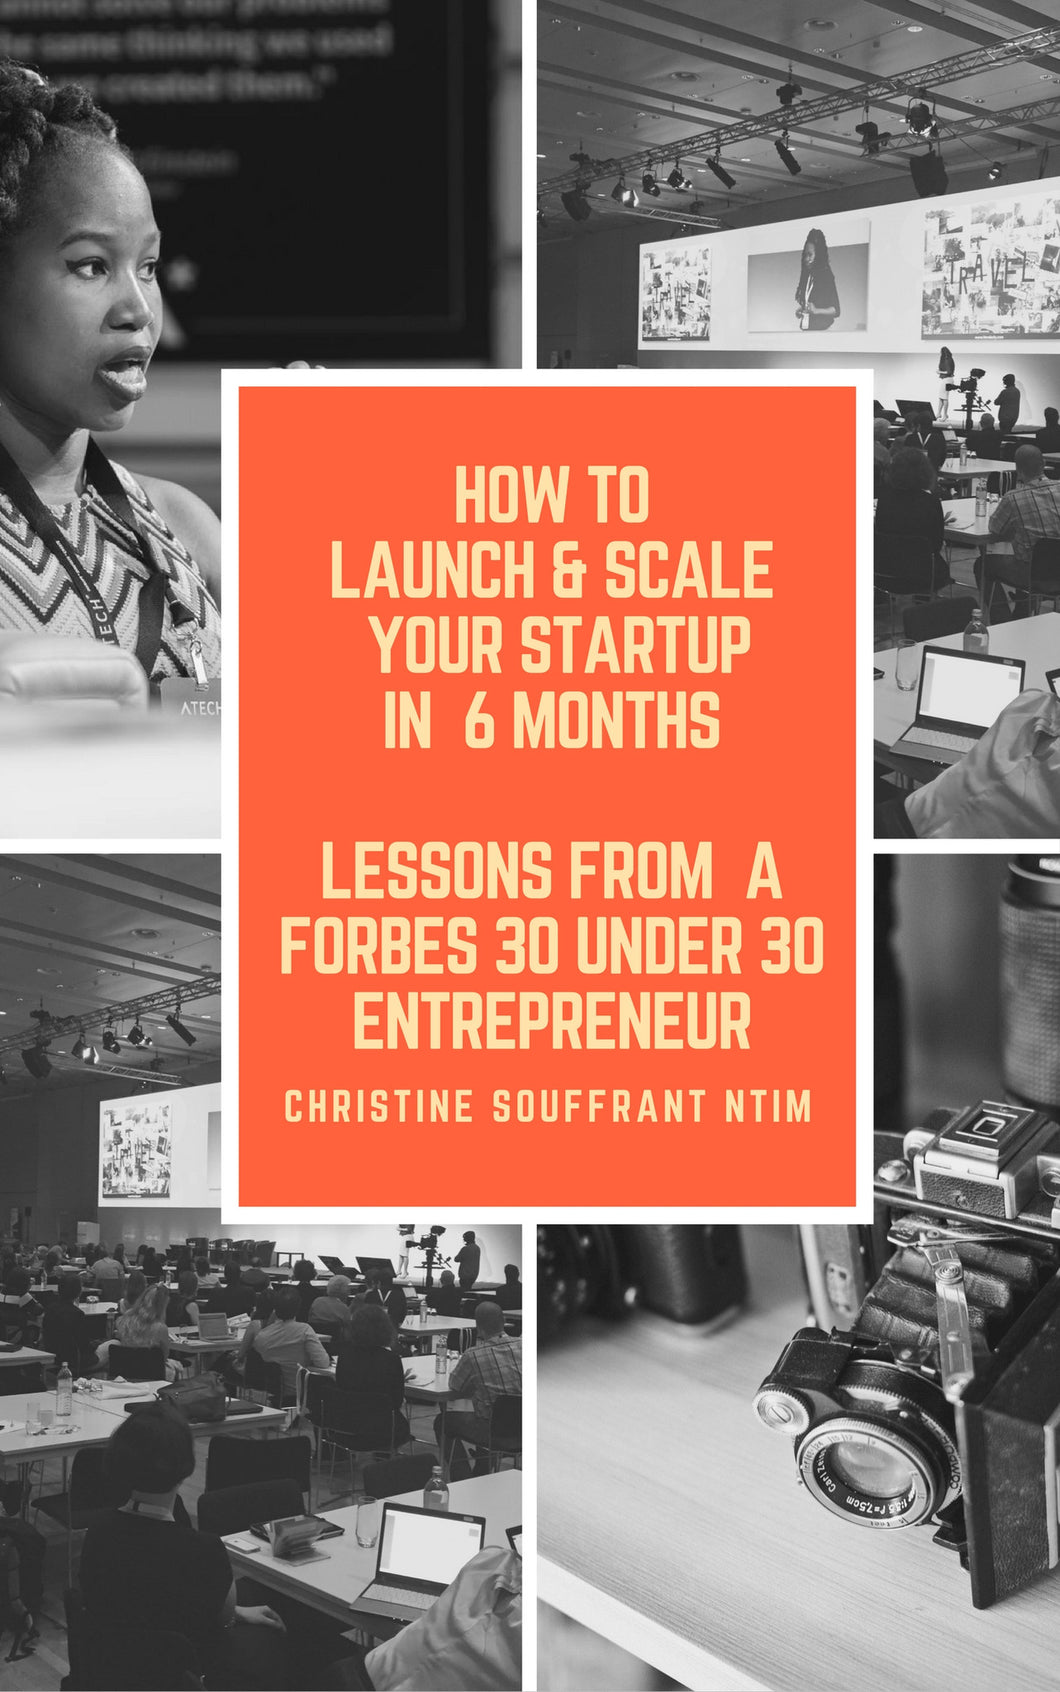 How to Launch & Scale Your Startup in 6 Months / Lessons from a Forbes 30Under30 Entrepreneur